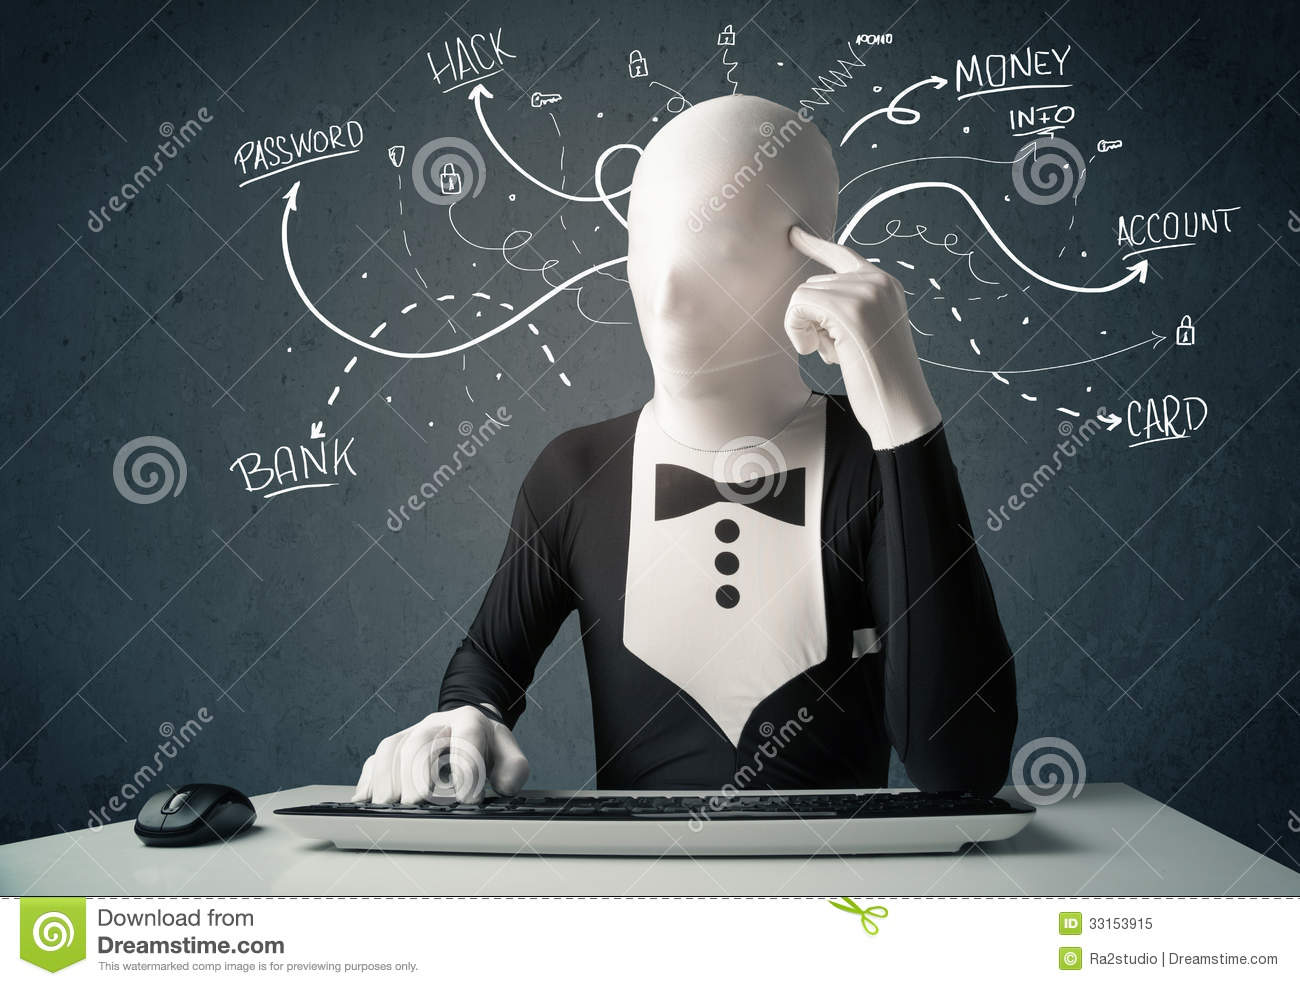 Morphsuit Hacker With White Drawn Line Thoughts Royalty Free Stock ...